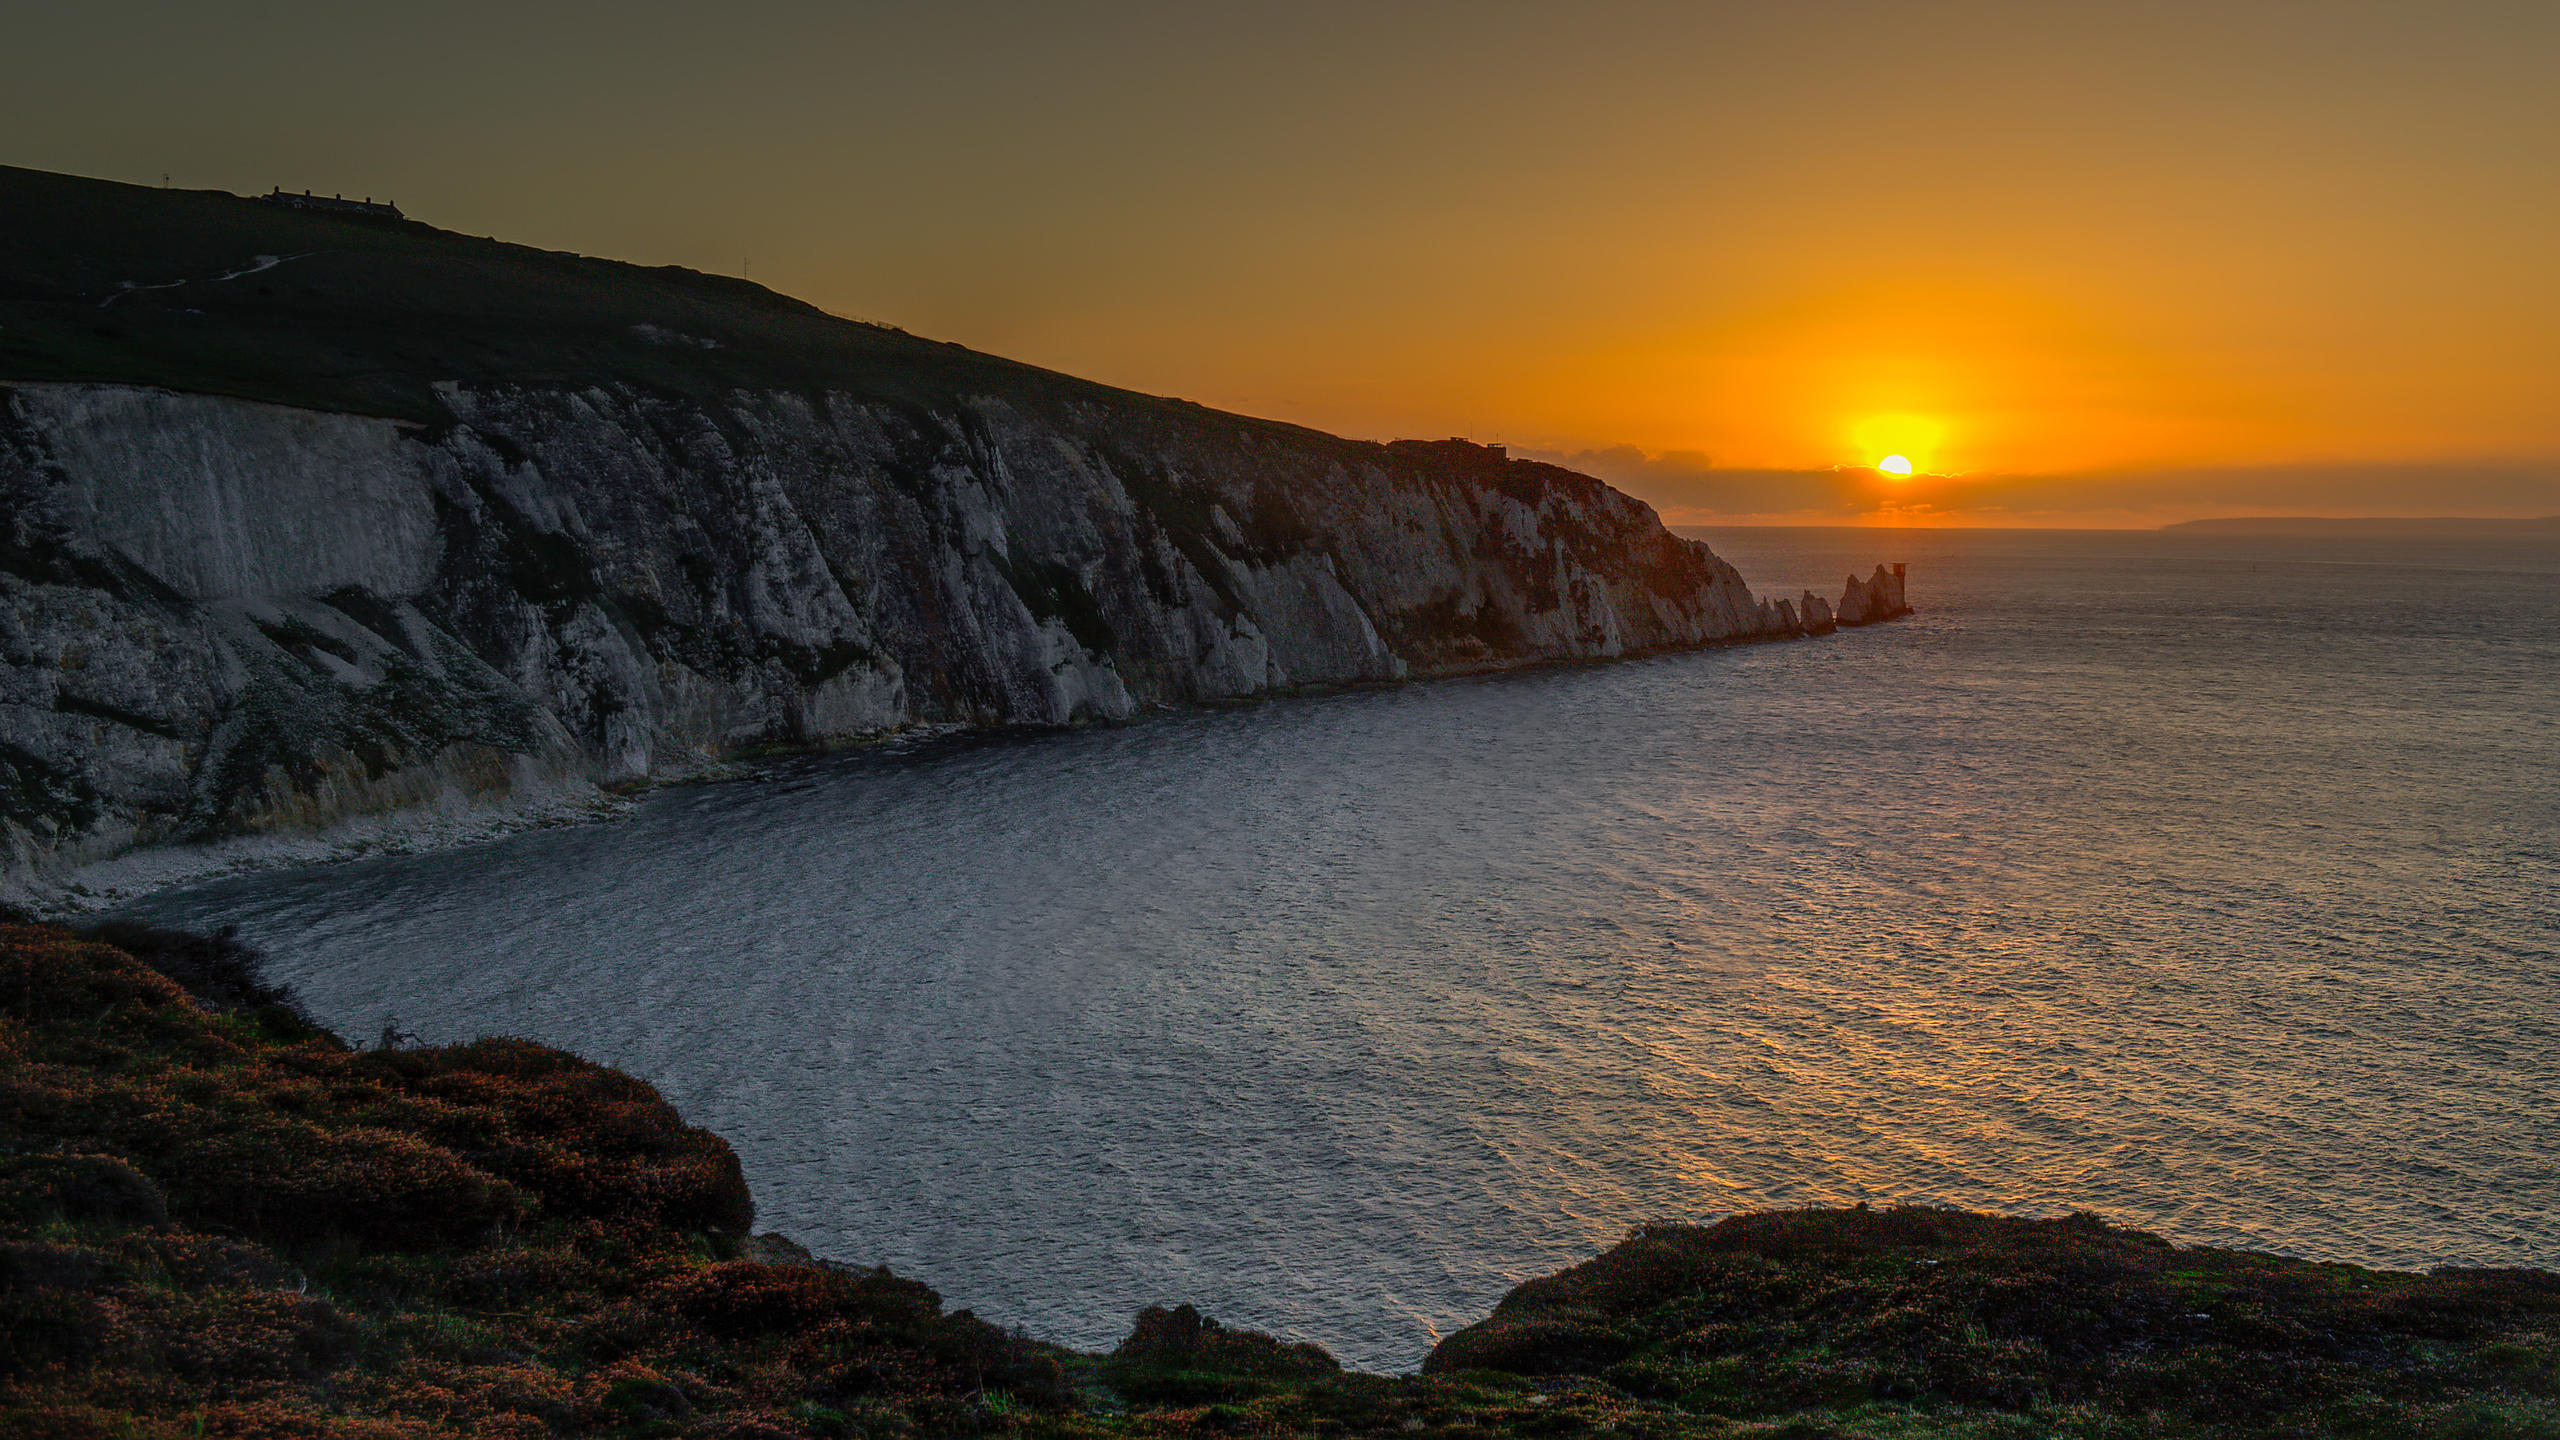 Aerial View of Sunset over The Needles & Alum Bay on the Isle of Wight